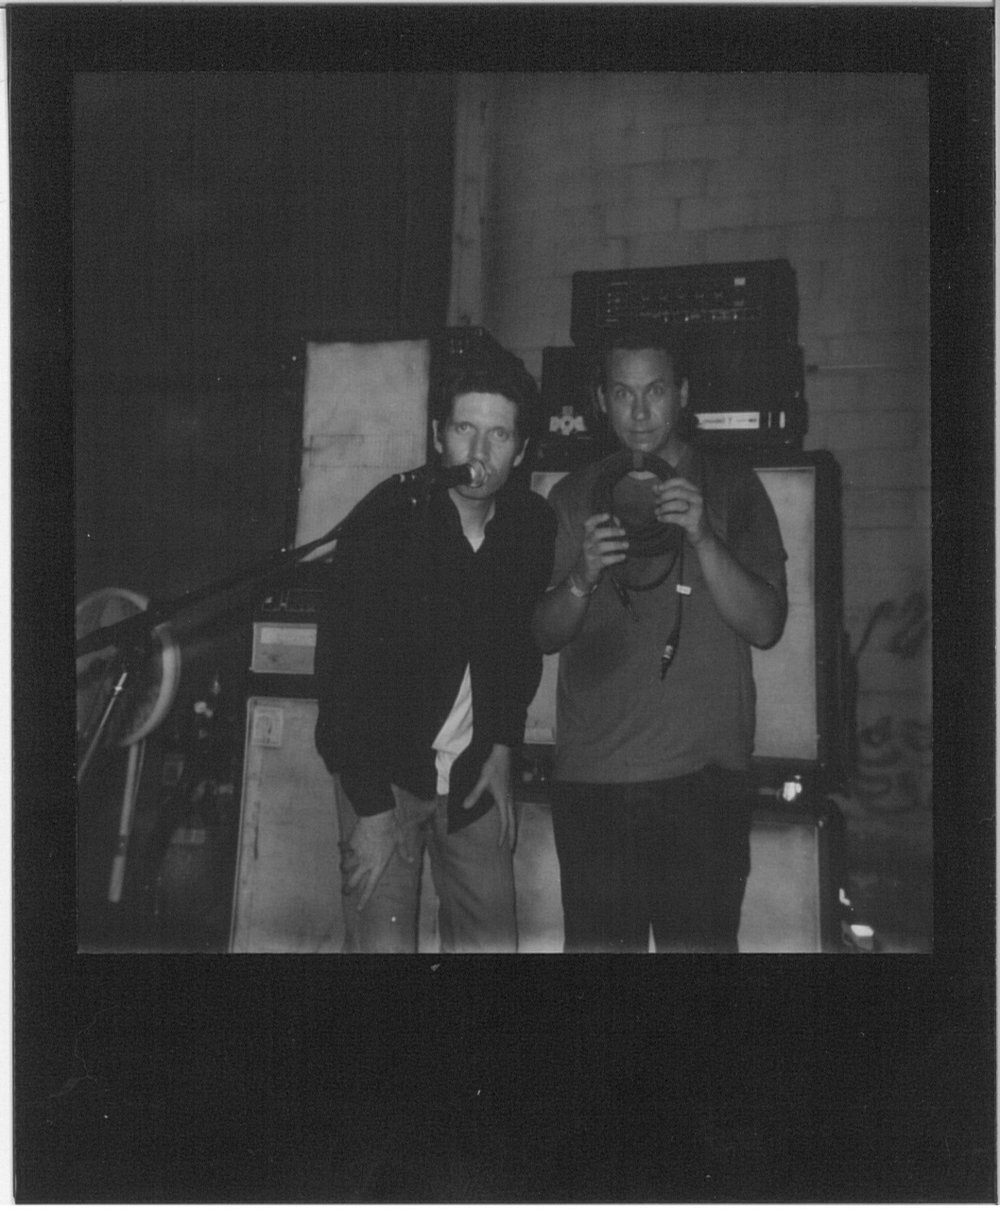 No Age, polaroid by Adam Murphy @ nonecktie.tumblr.com